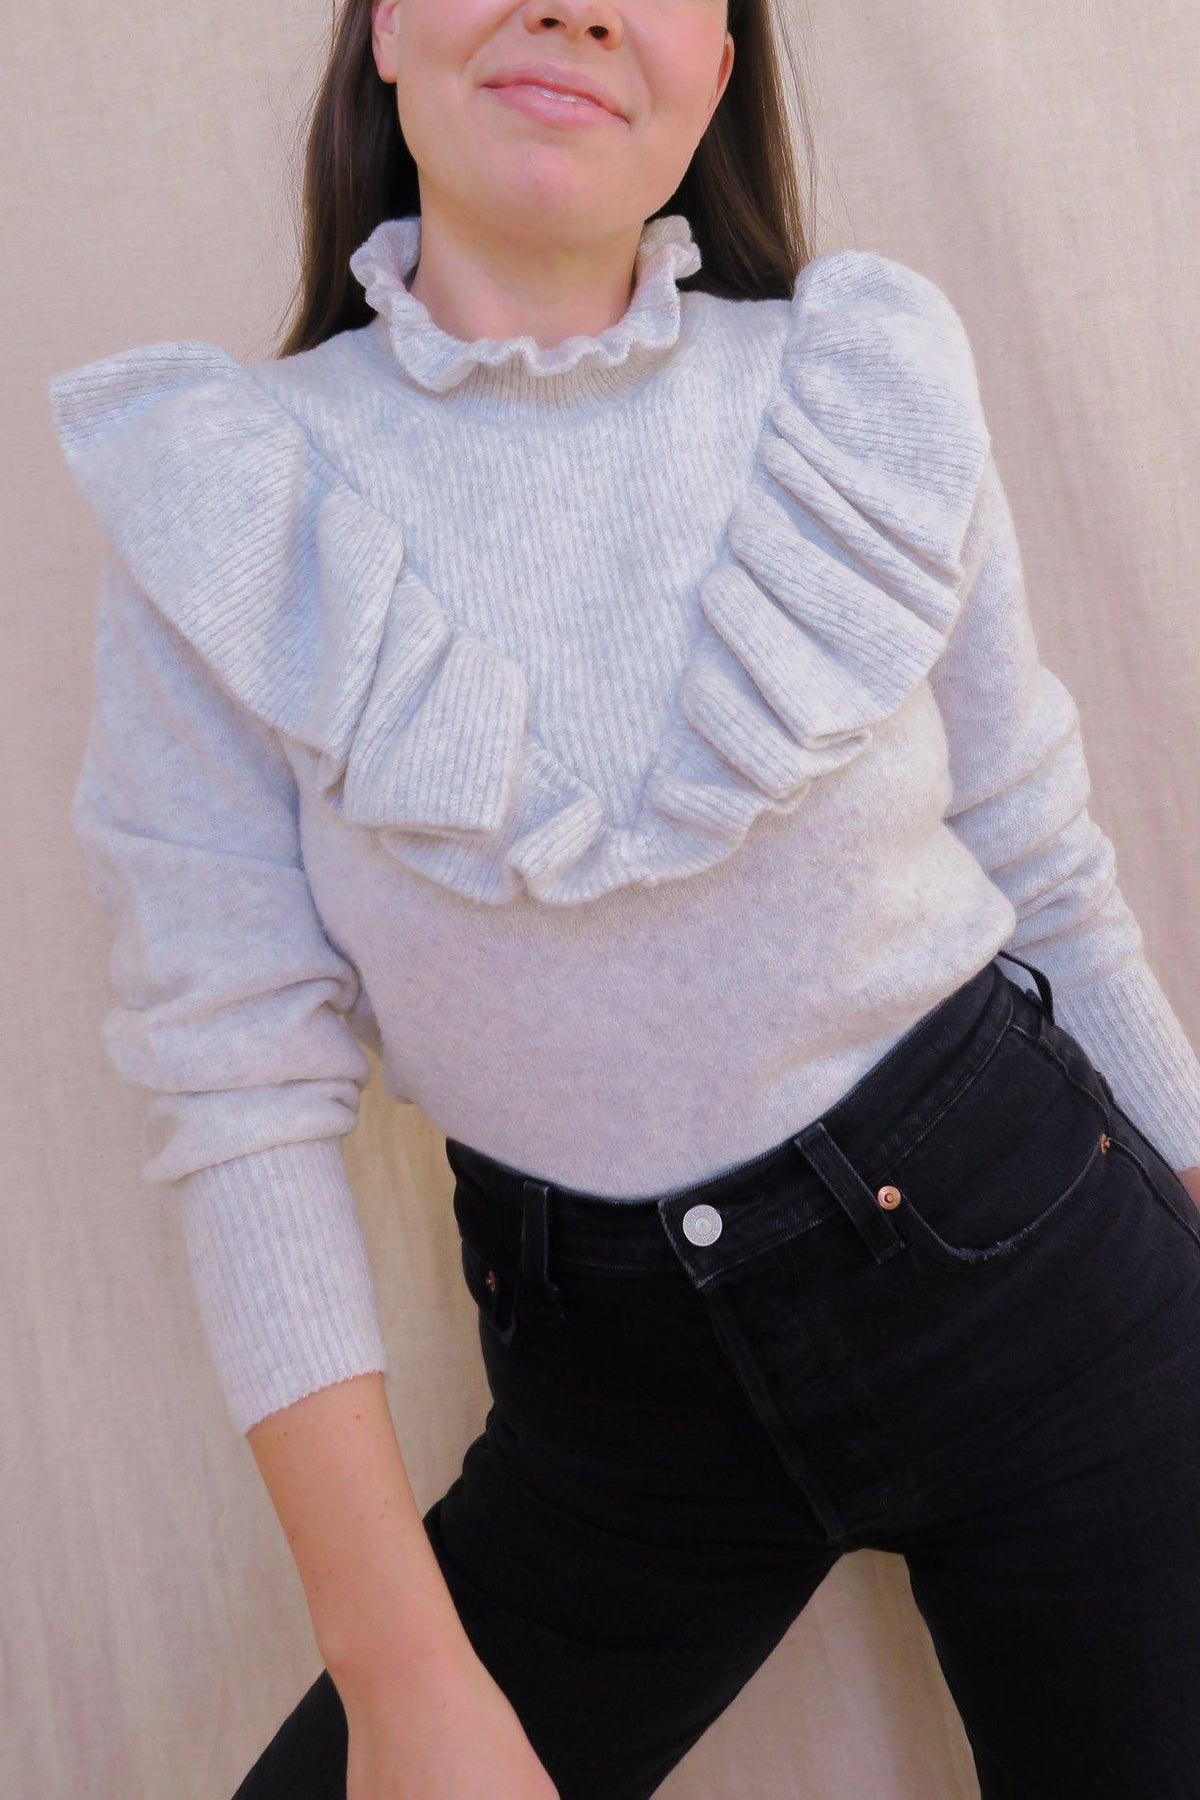 French Connection Mira Flossy Sweater - Sweet & Spark